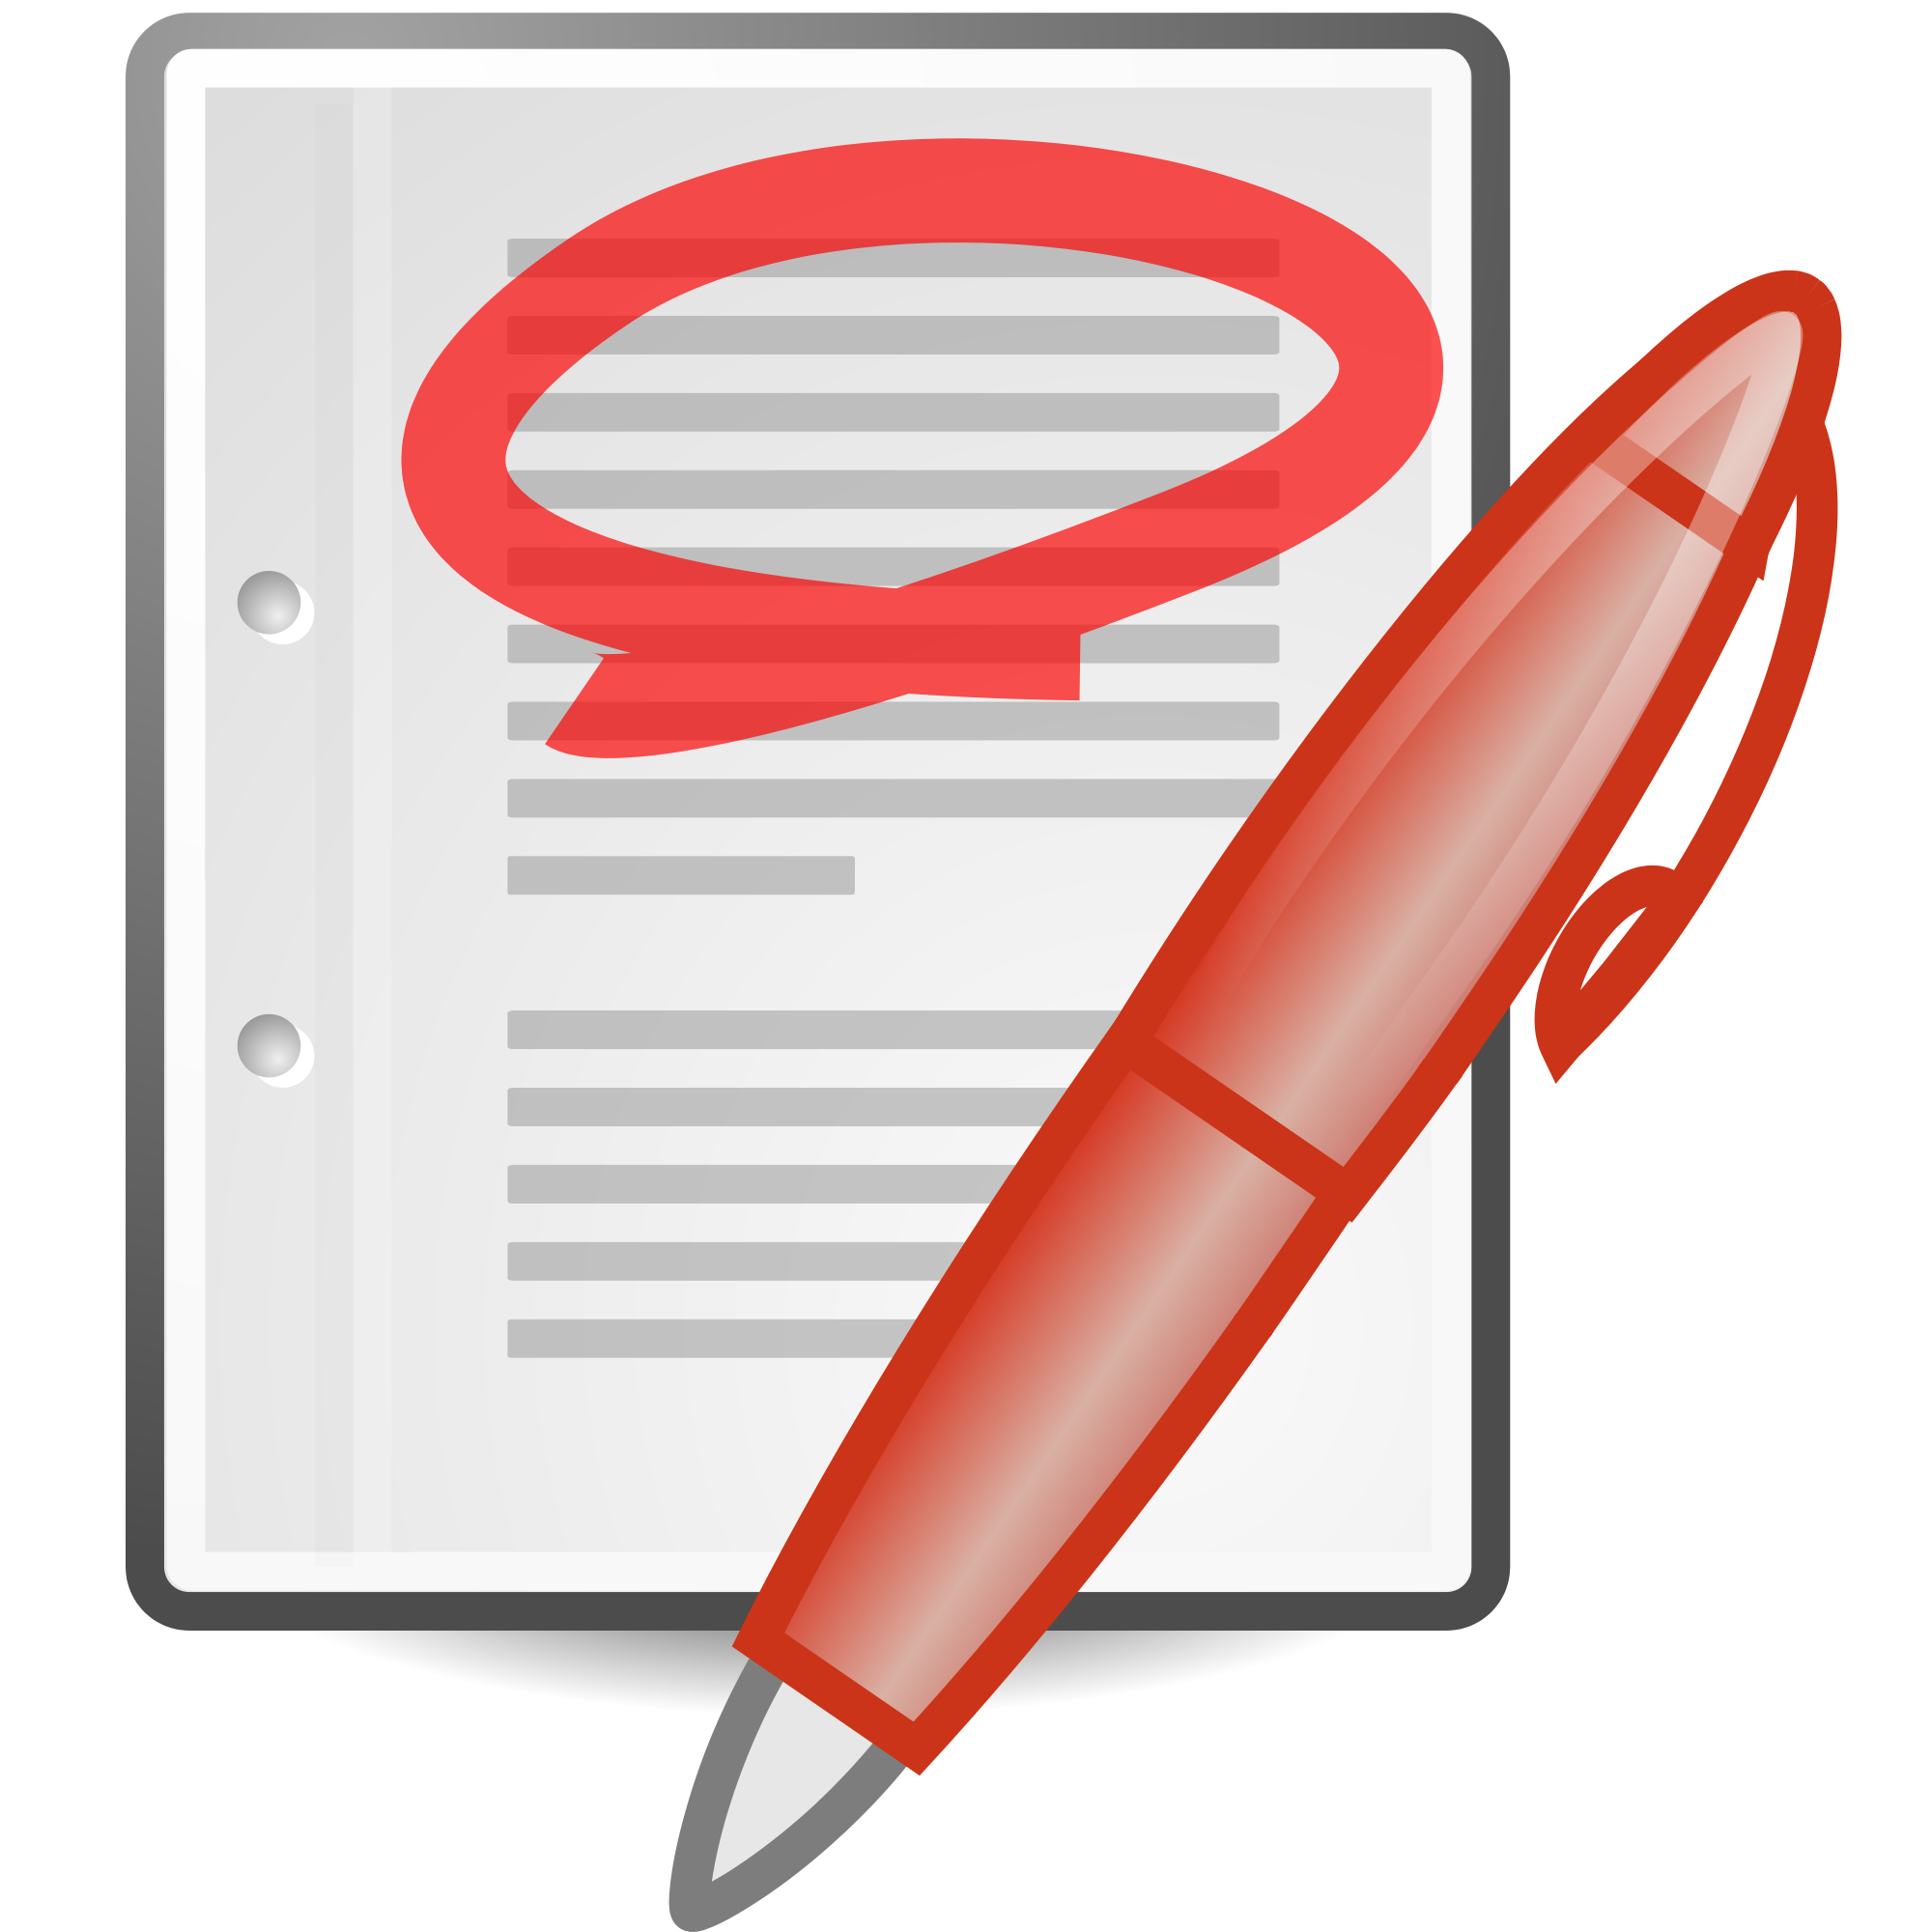 Essay clipart red pen, Essay red pen Transparent FREE for.